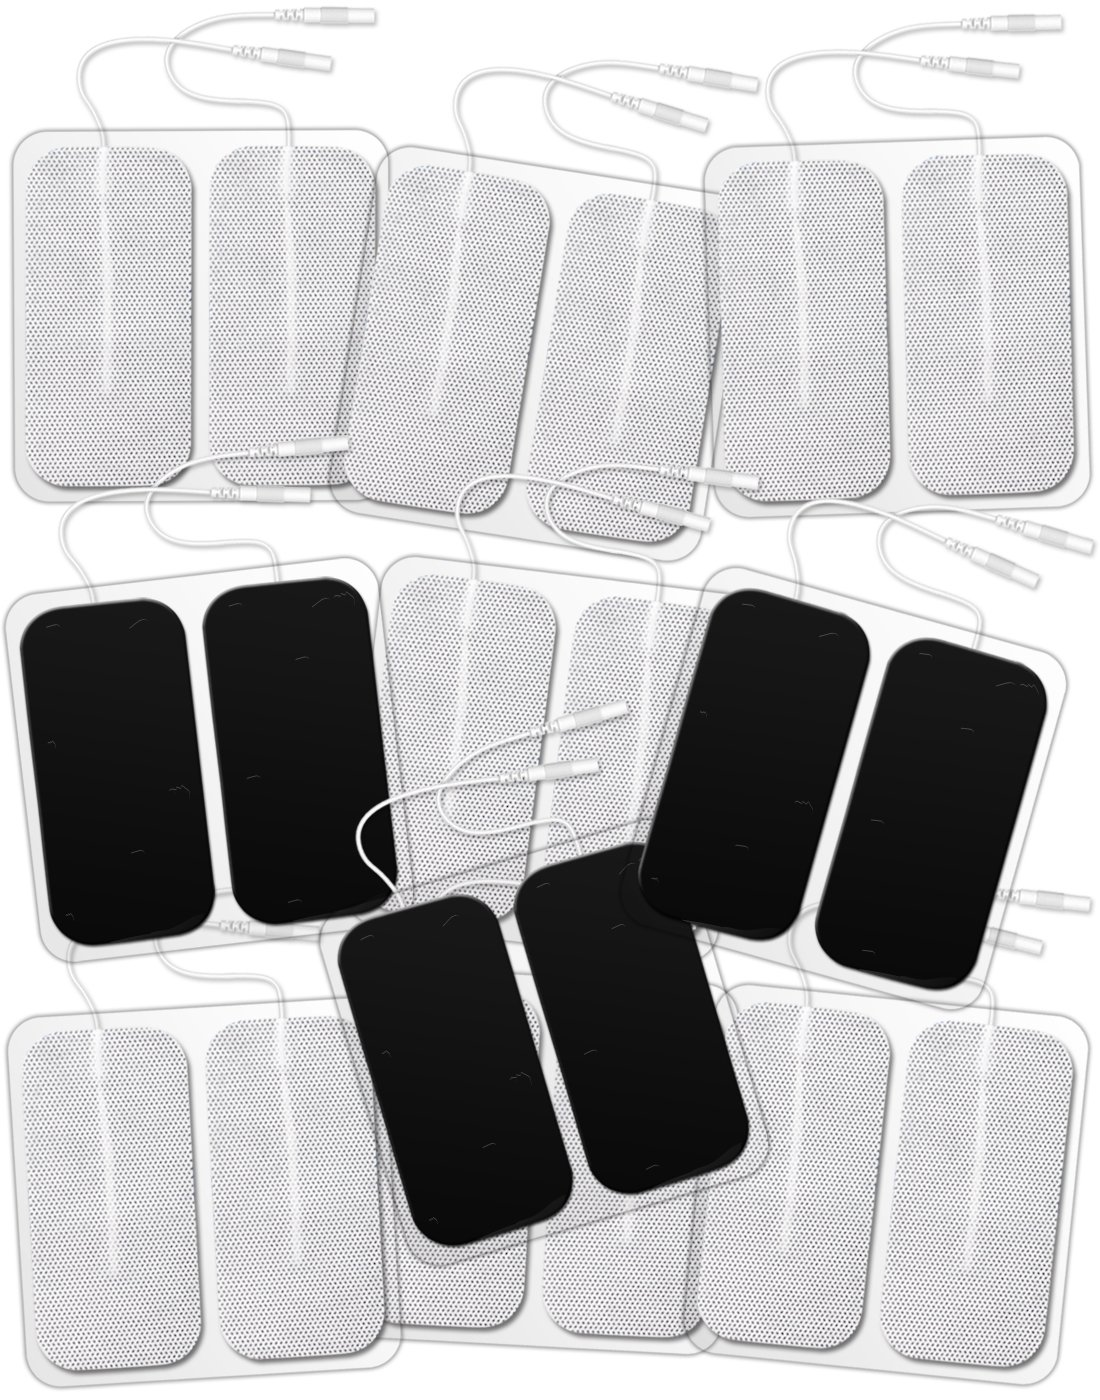 """DONECO TENS Unit Electrodes 2""""x4"""" Rectangular 20-Pack Electrode Pads for TENS Therapy - Self-Adhering, Reusable and Premium Quality"""